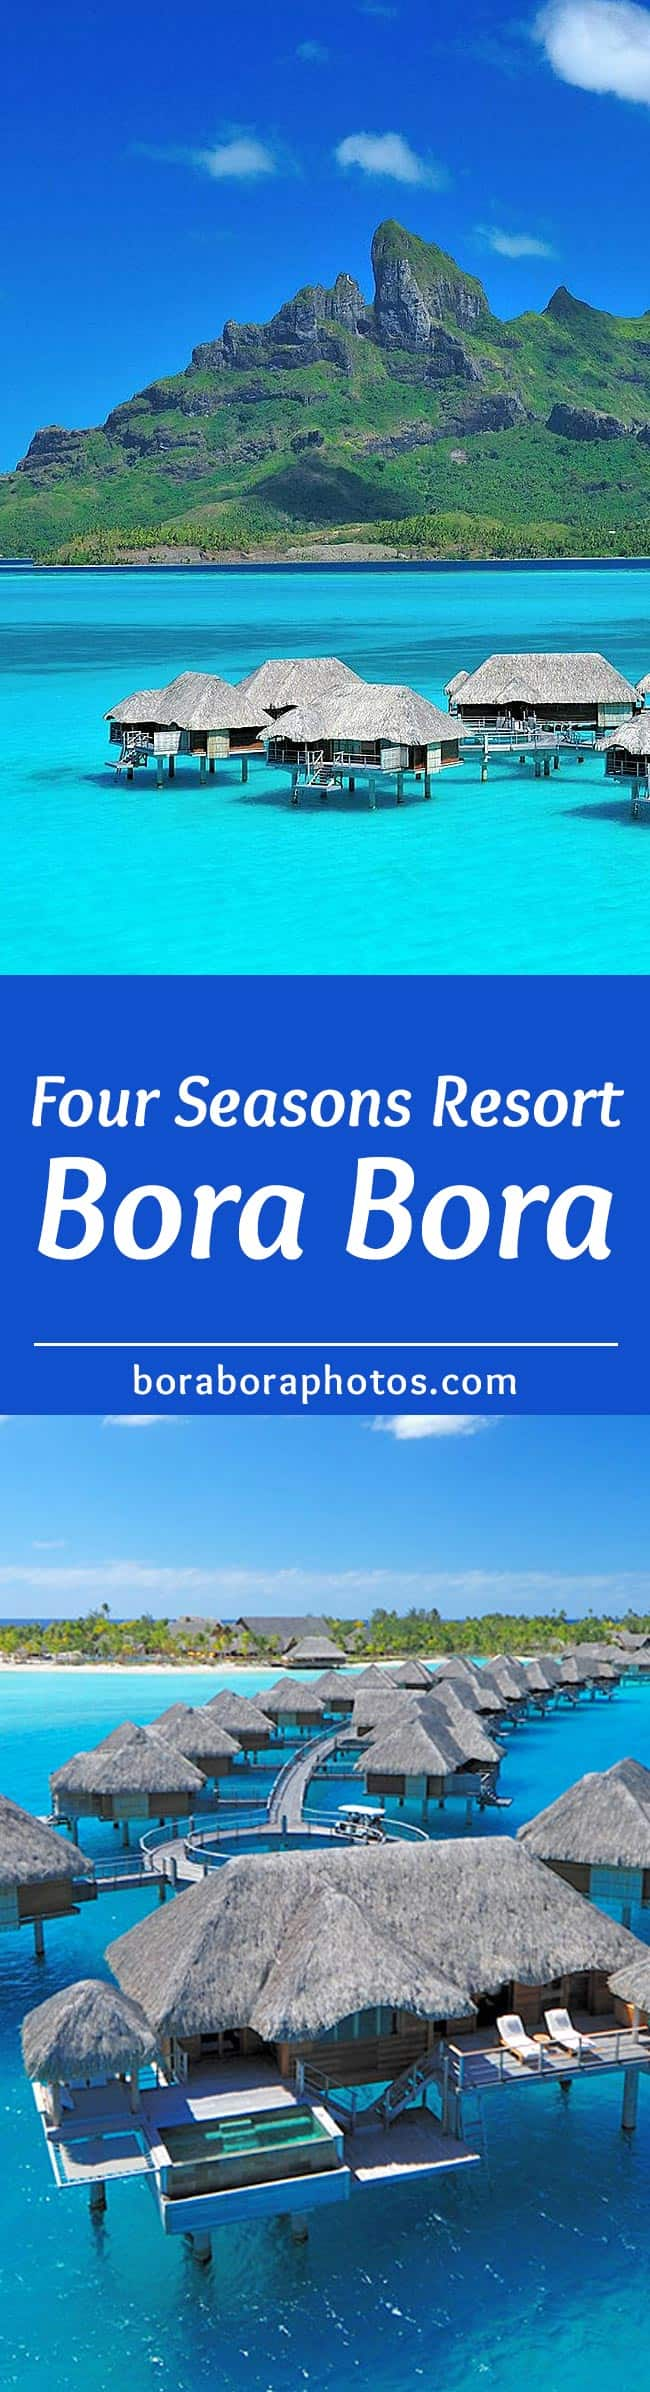 Bora Bora Four Seasons Resort - Luxurious overwater bungalow accommodations surrounded by sand-fringed islets on an outer coral reef that encloses a turquoise lagoon.